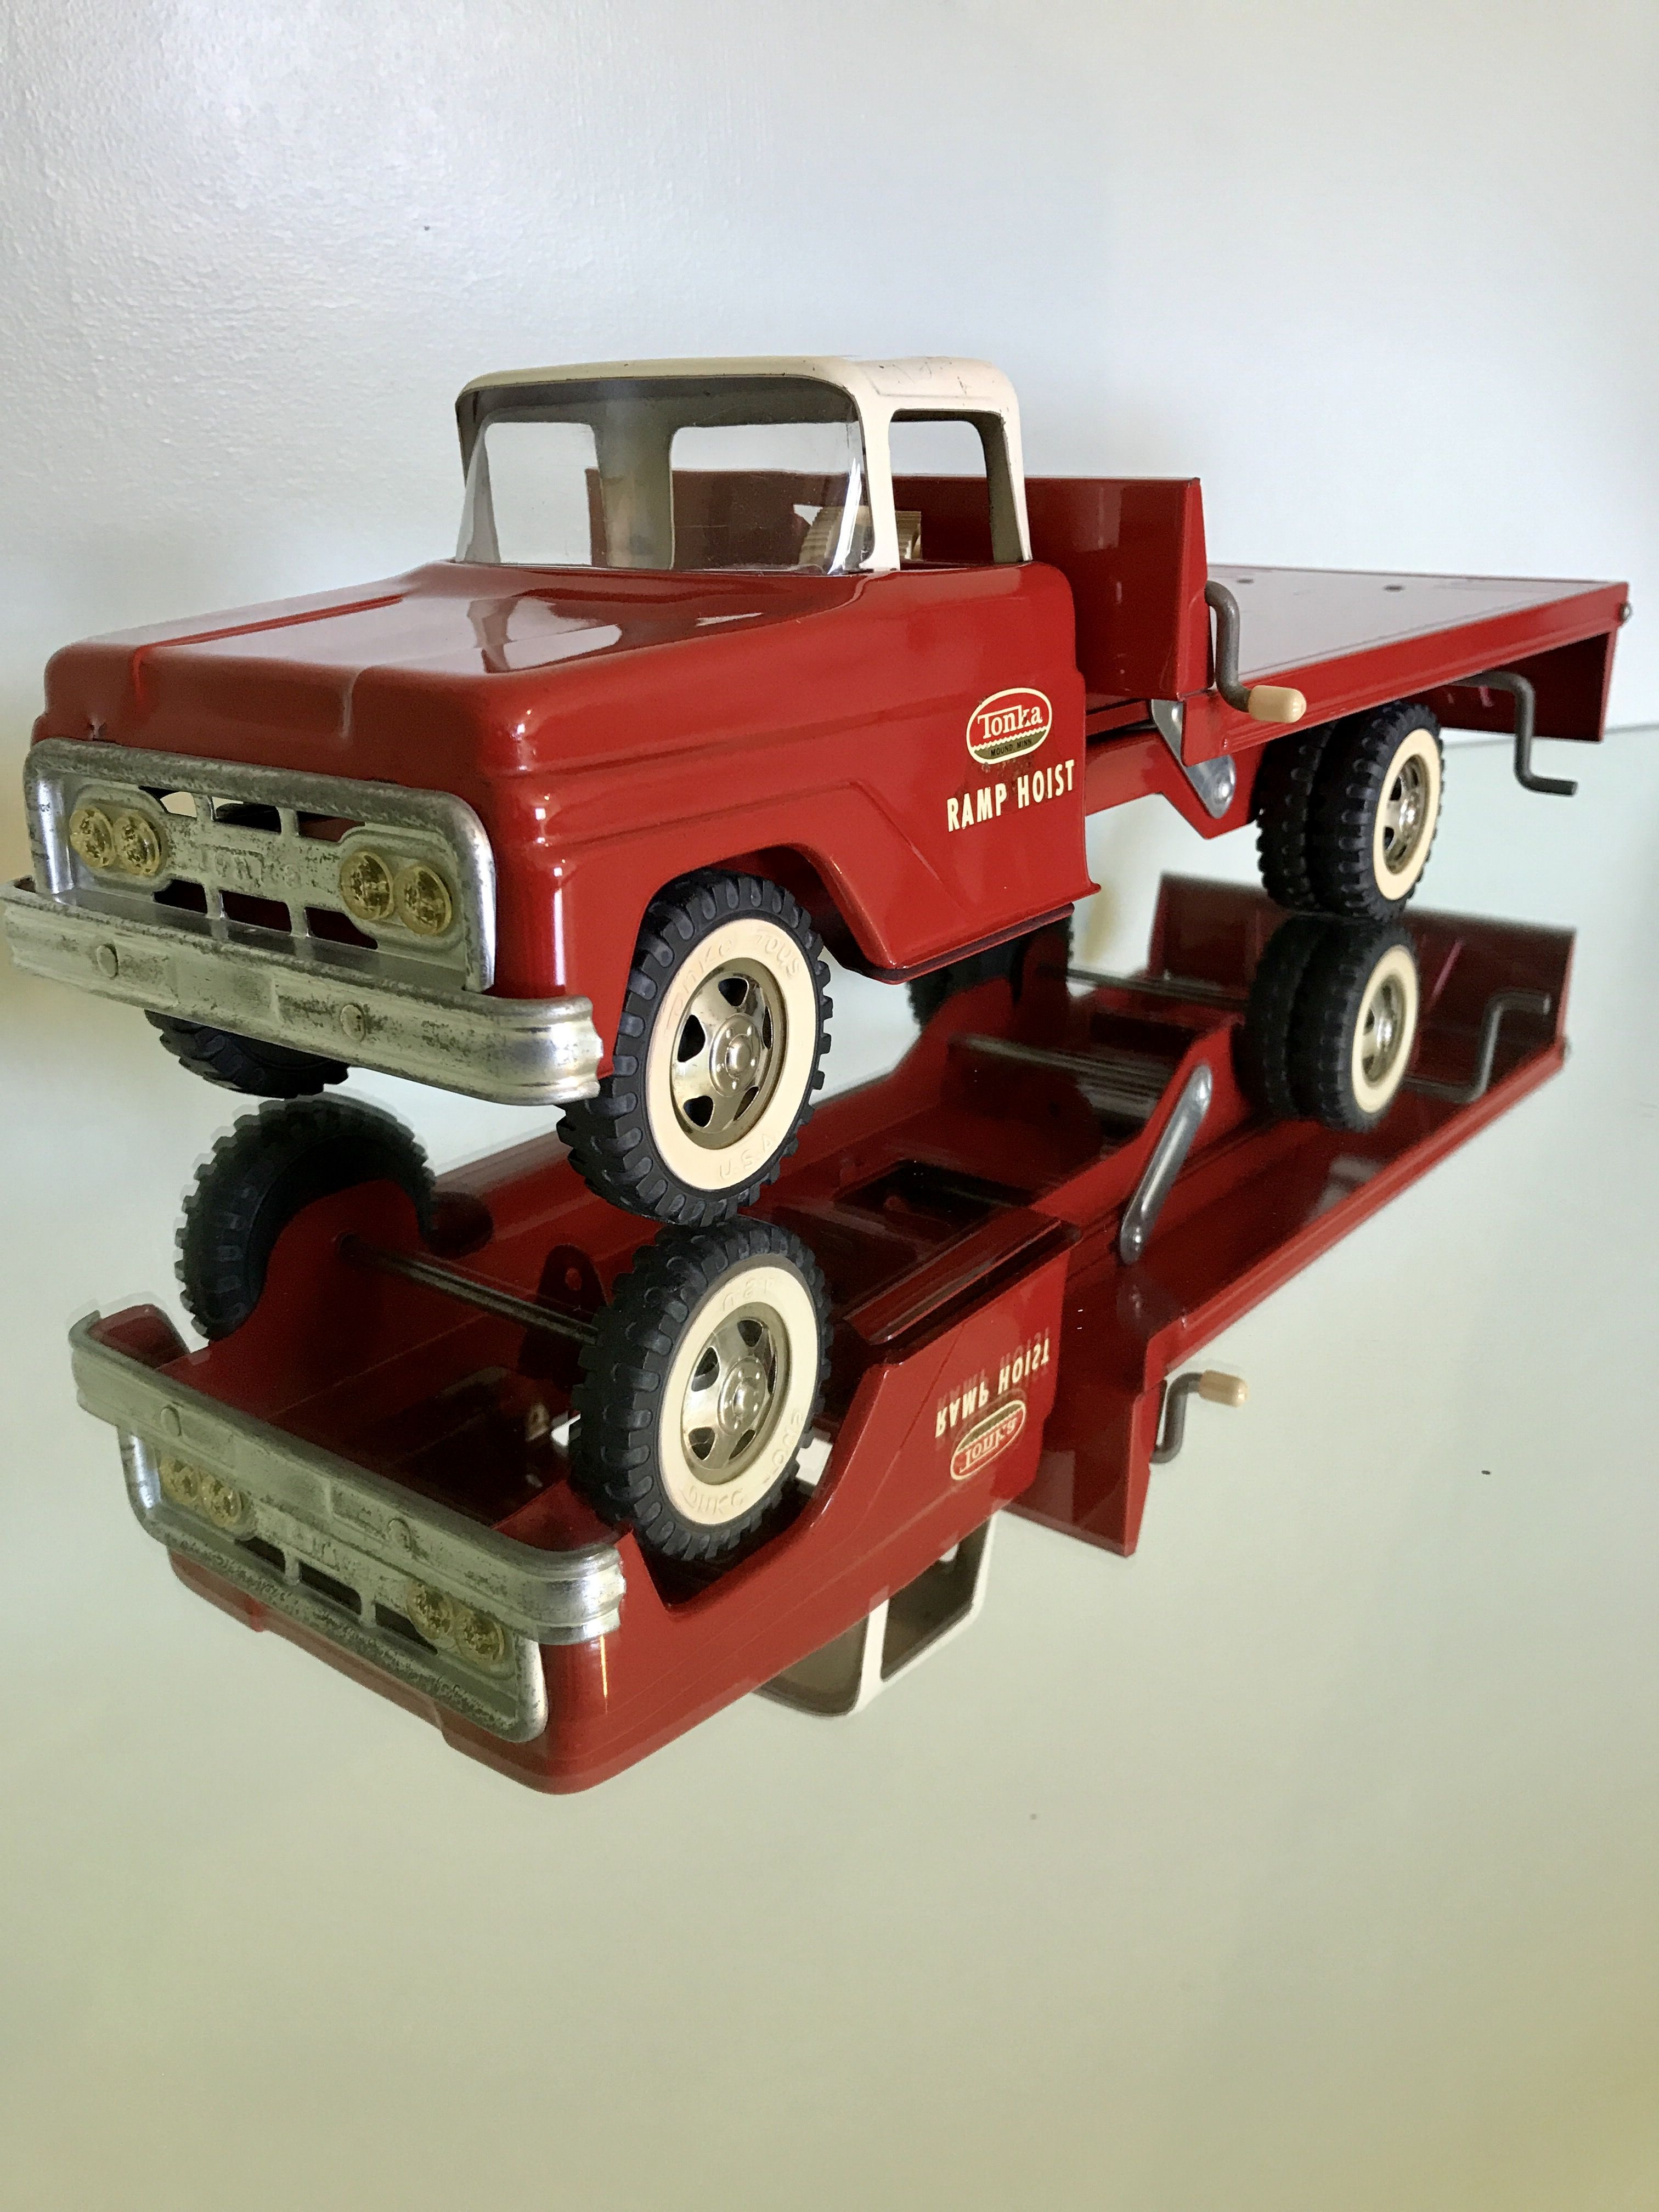 Toys car and truck  Pin by Barbed Wire and Roses on toys  Pinterest  Tonka toys and